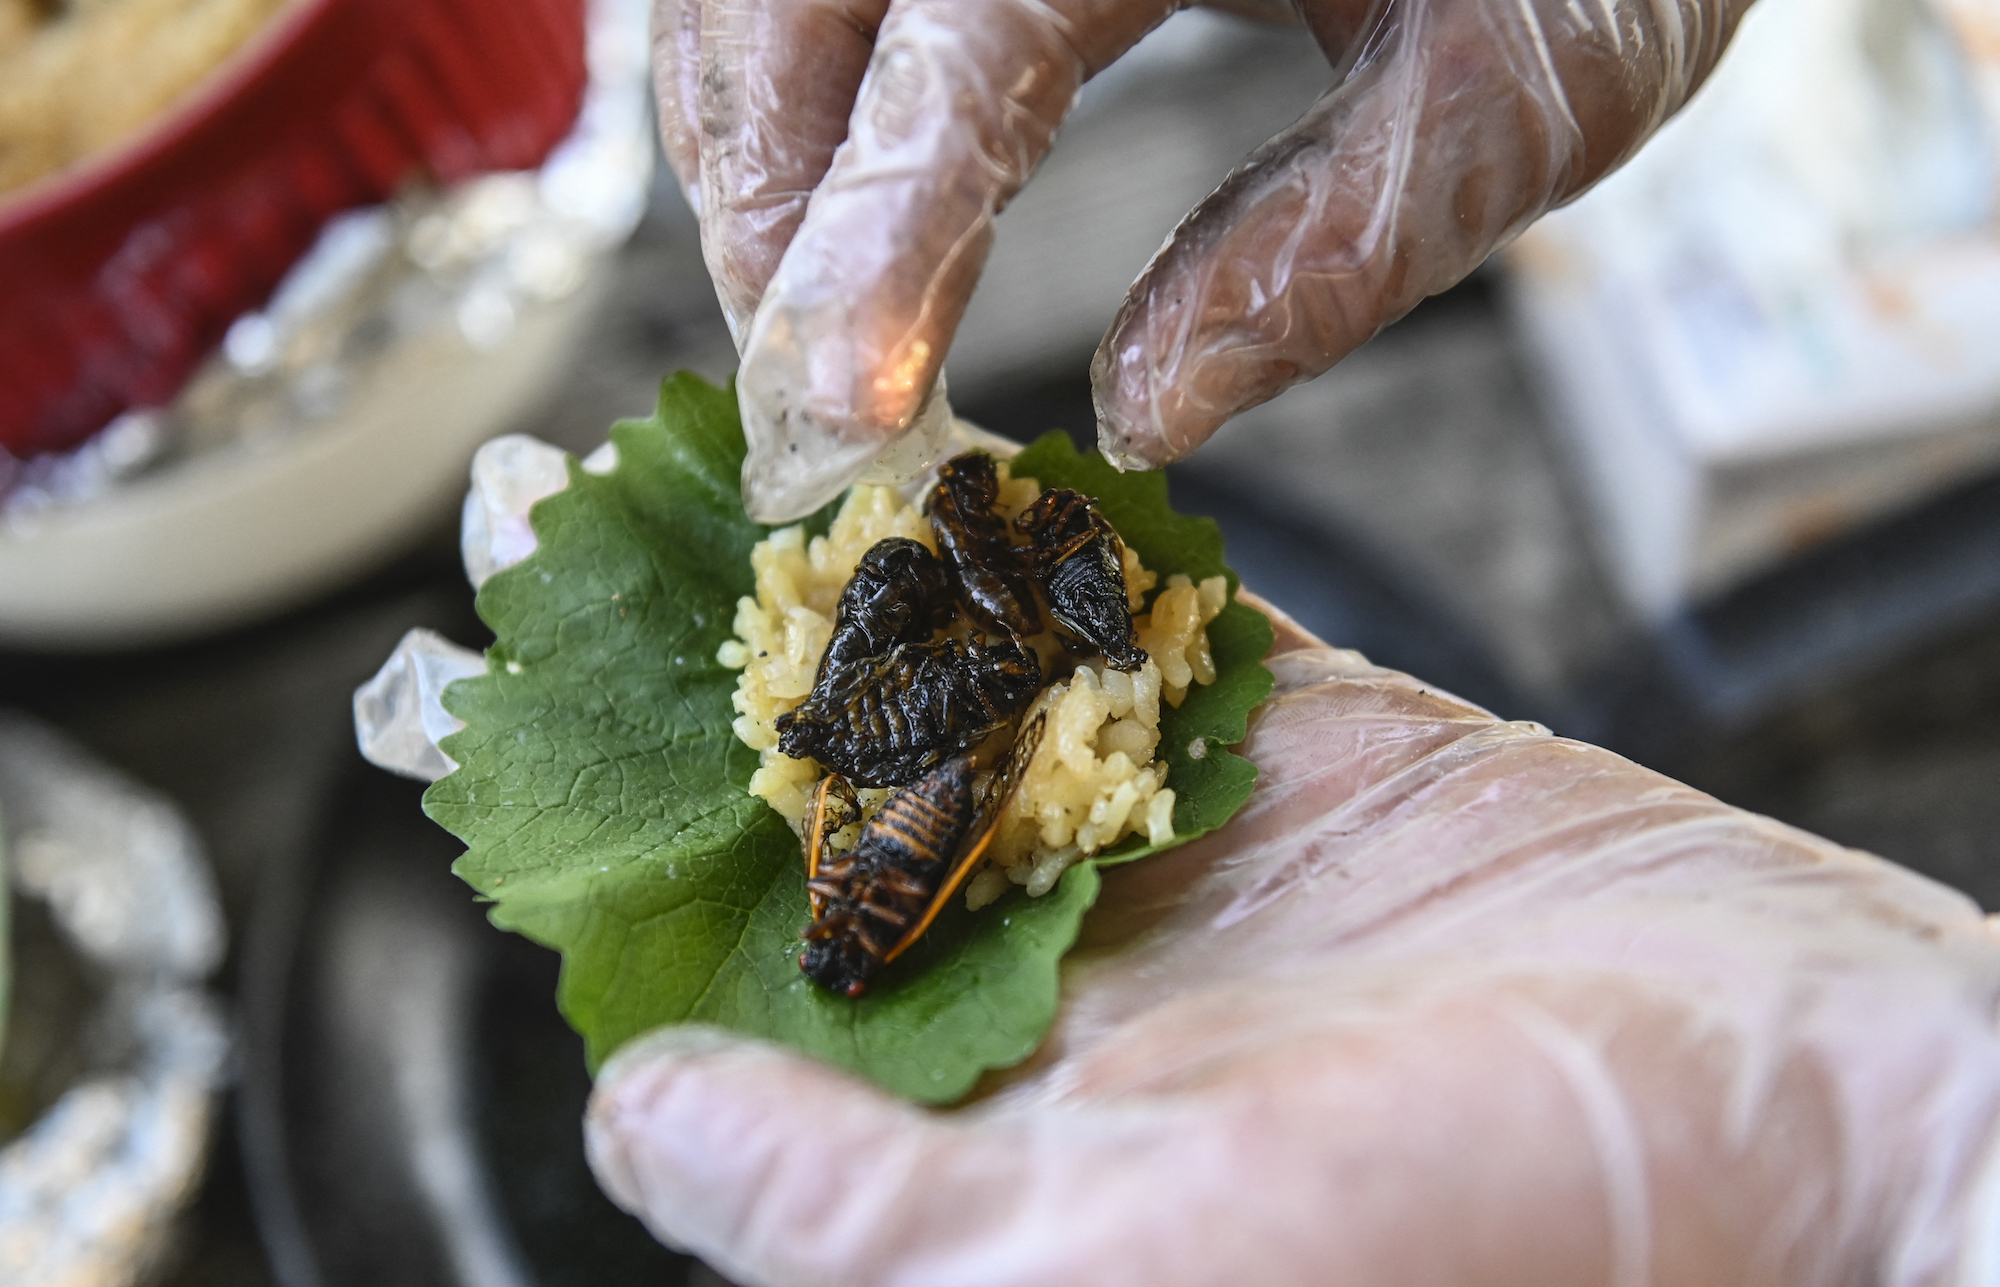 Fried cicadas are rolled into a sushi roll by chef Bun Lai at Fort Totten Park in Washington, DC on May 23, 2021